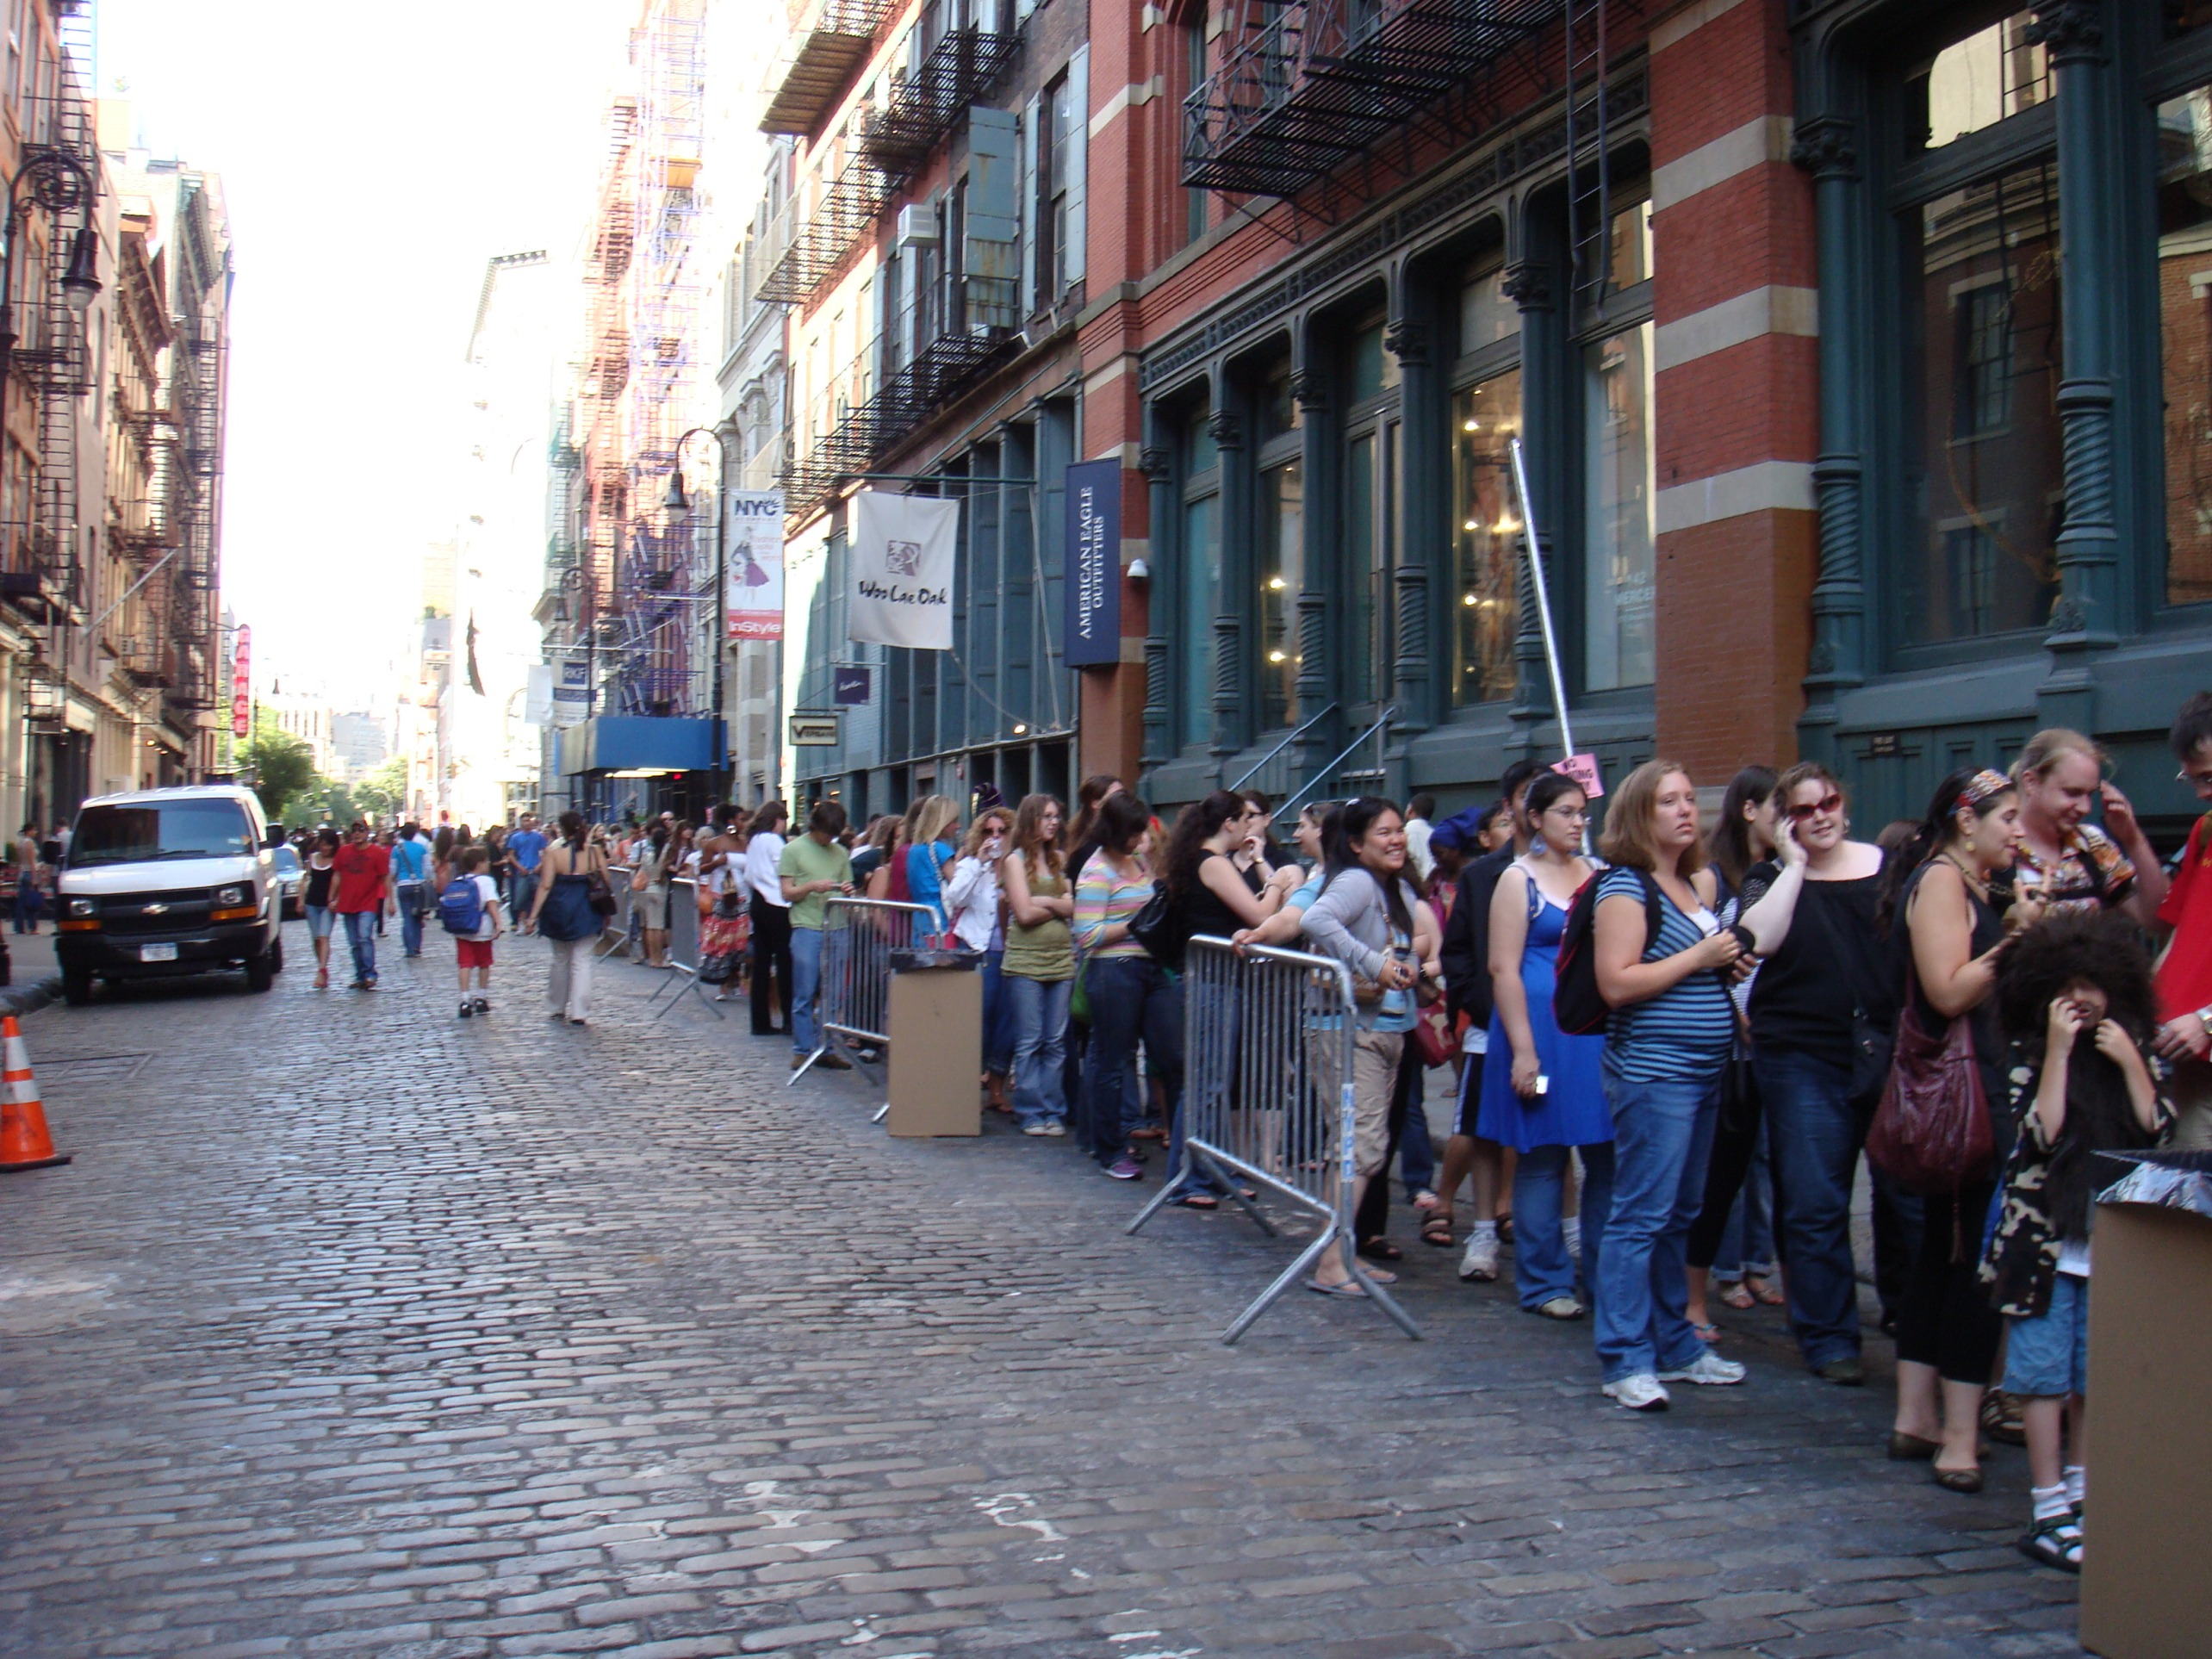 ny-july-2007-harry-potter-009.jpg